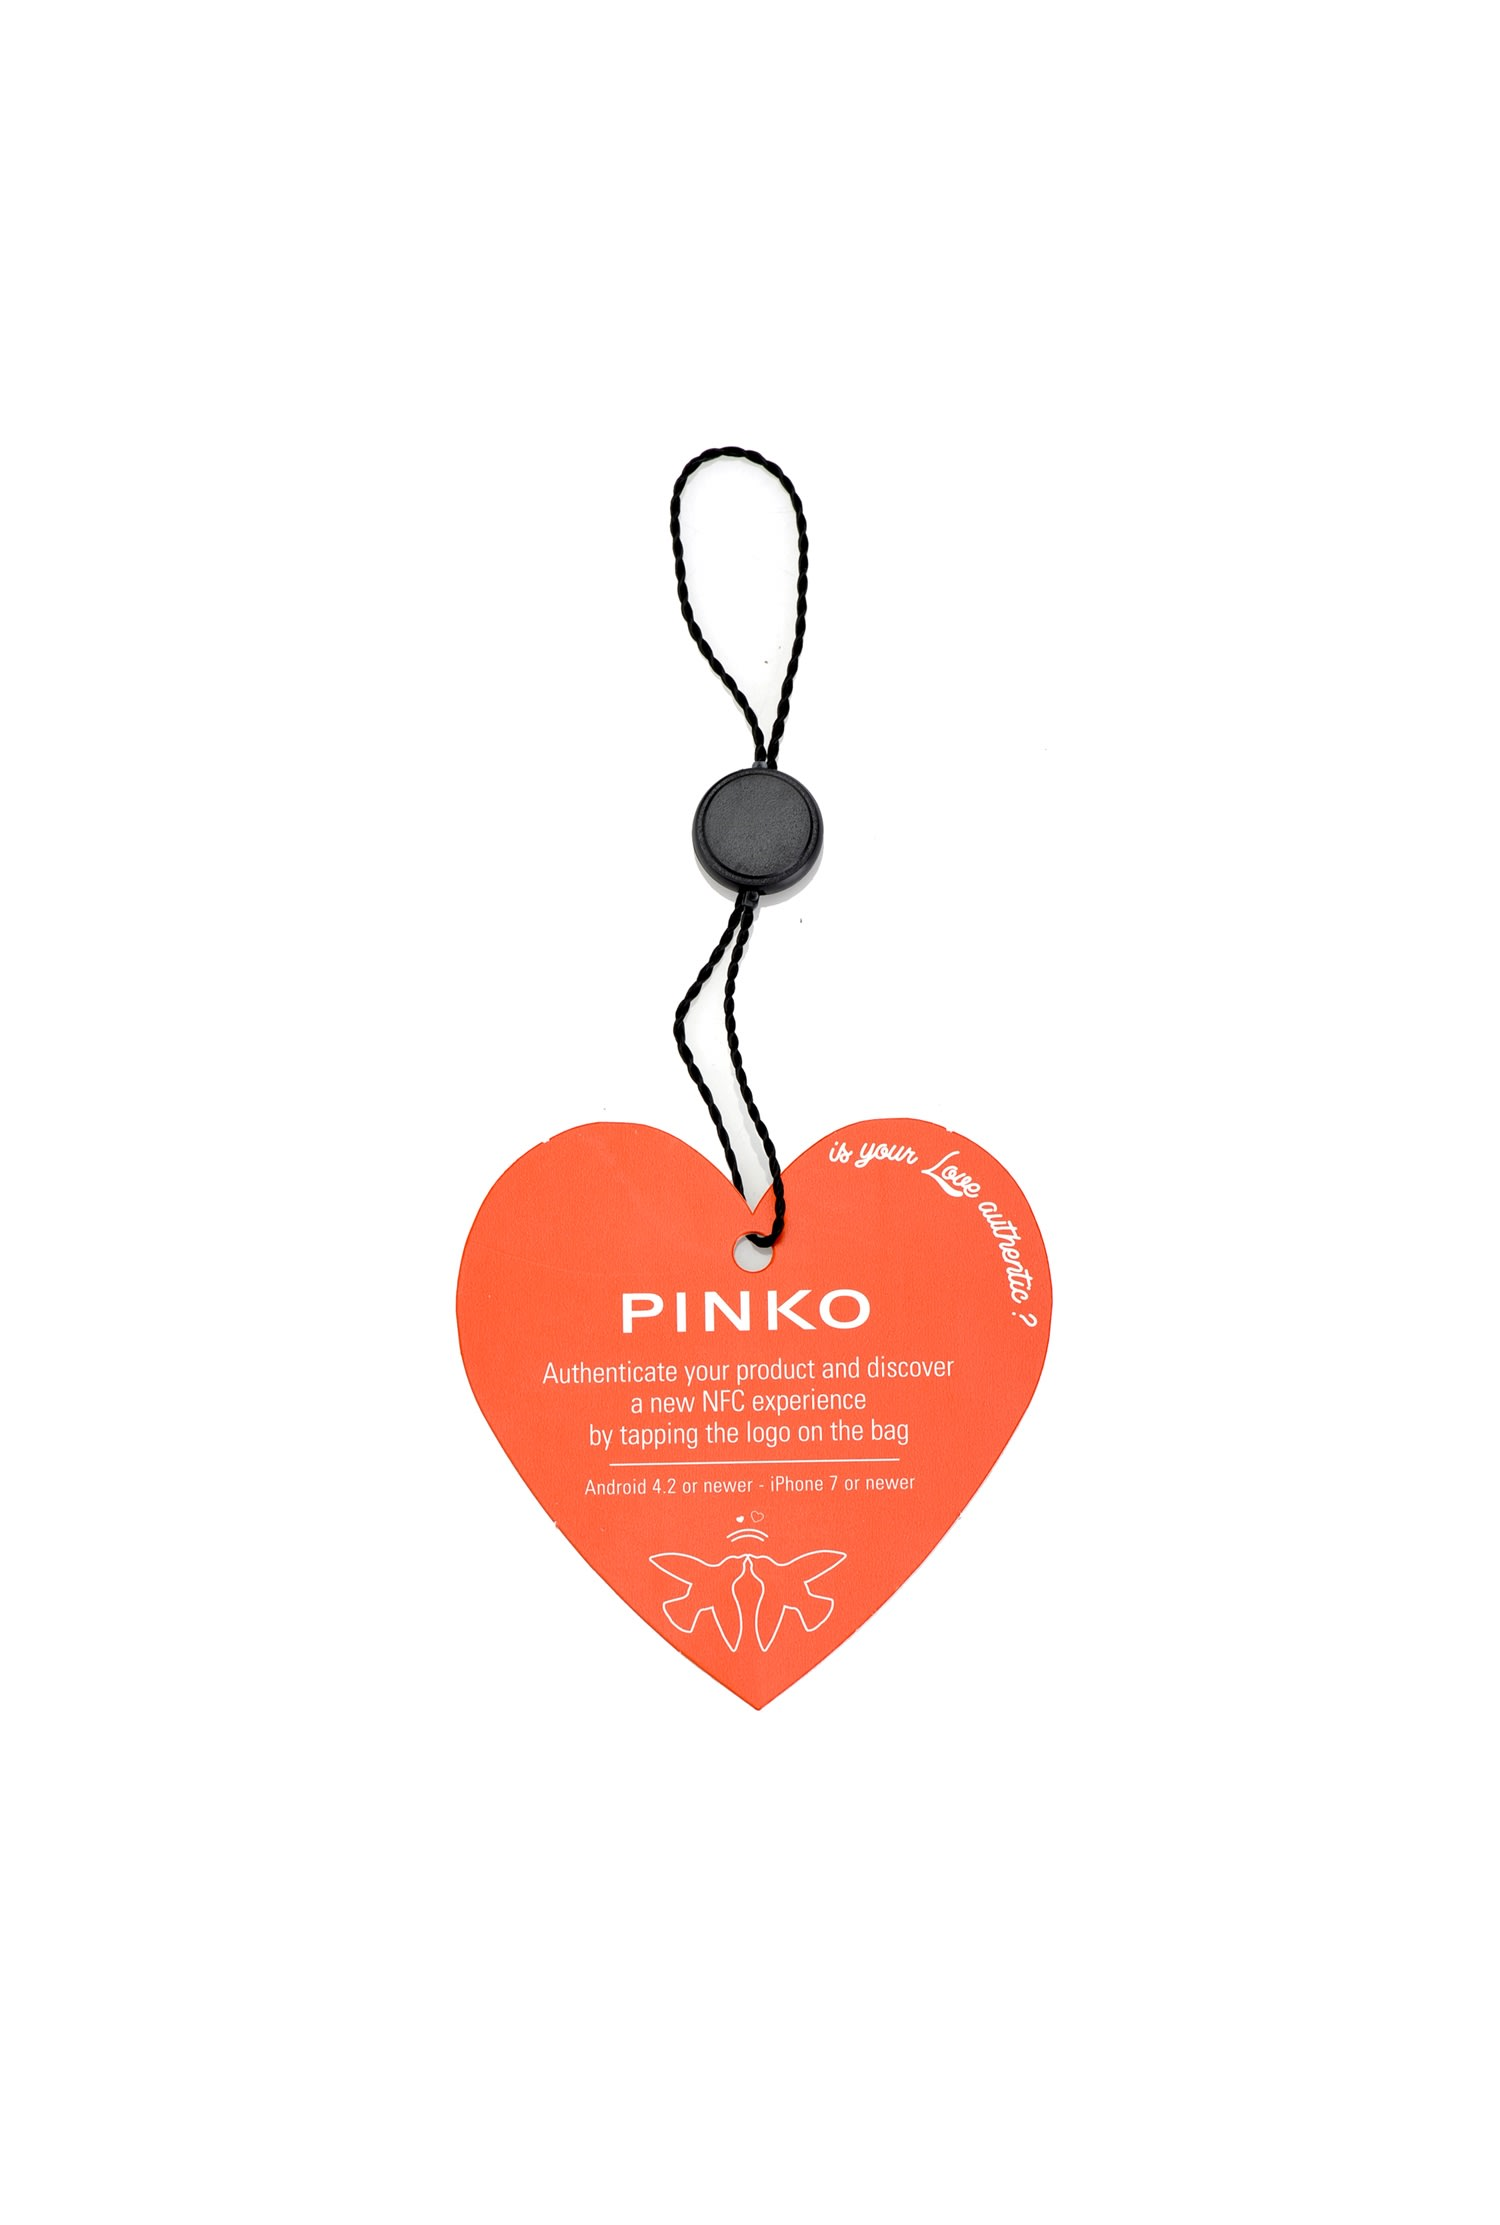 SHOPPING ON LINE PINKO PORTAFOGLIO A TRACOLLA IN PELLE SIMPLY 2 NEW COLLECTION WOMEN'S FALL WINTER 2020/2021-2